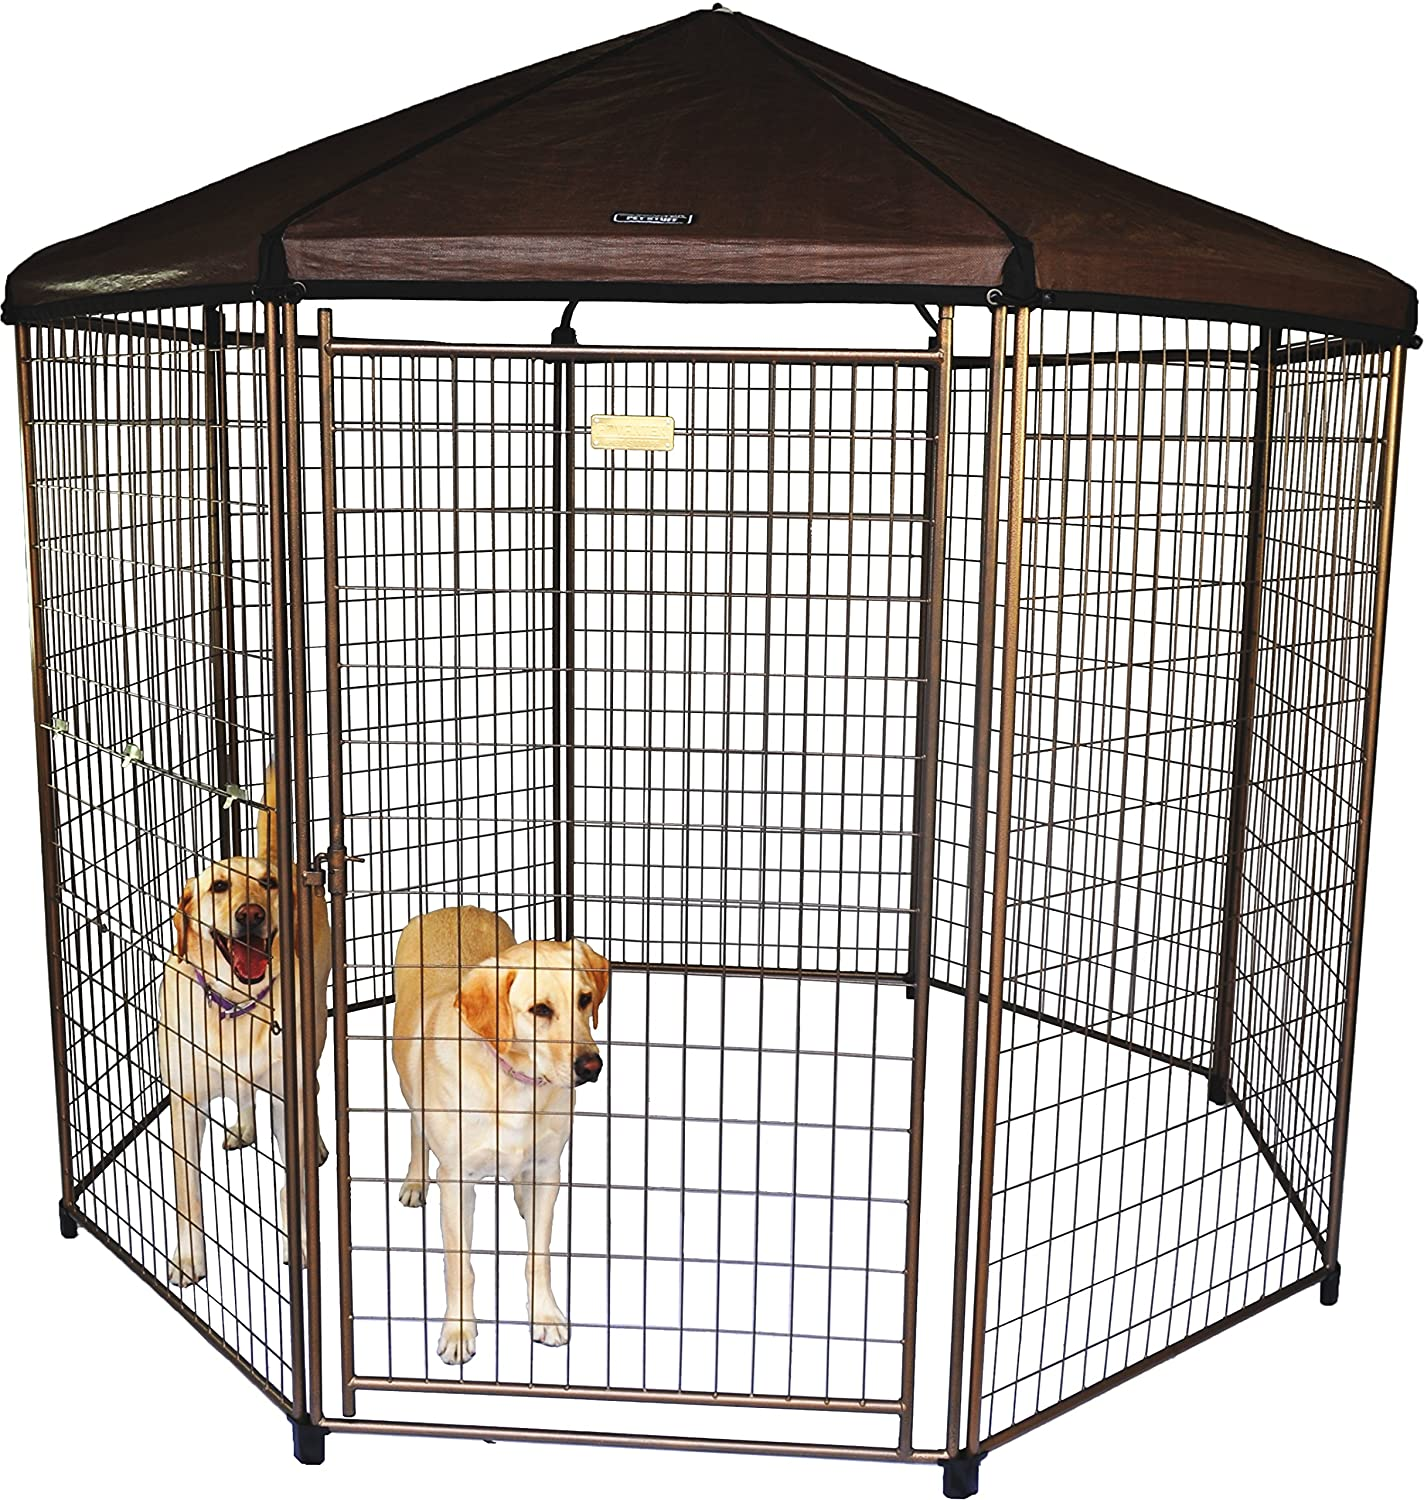 Since finding the right dog crate is vital to your pet's well-being, we  offer a variety of crate materials and sizes to suit your pup's needs.